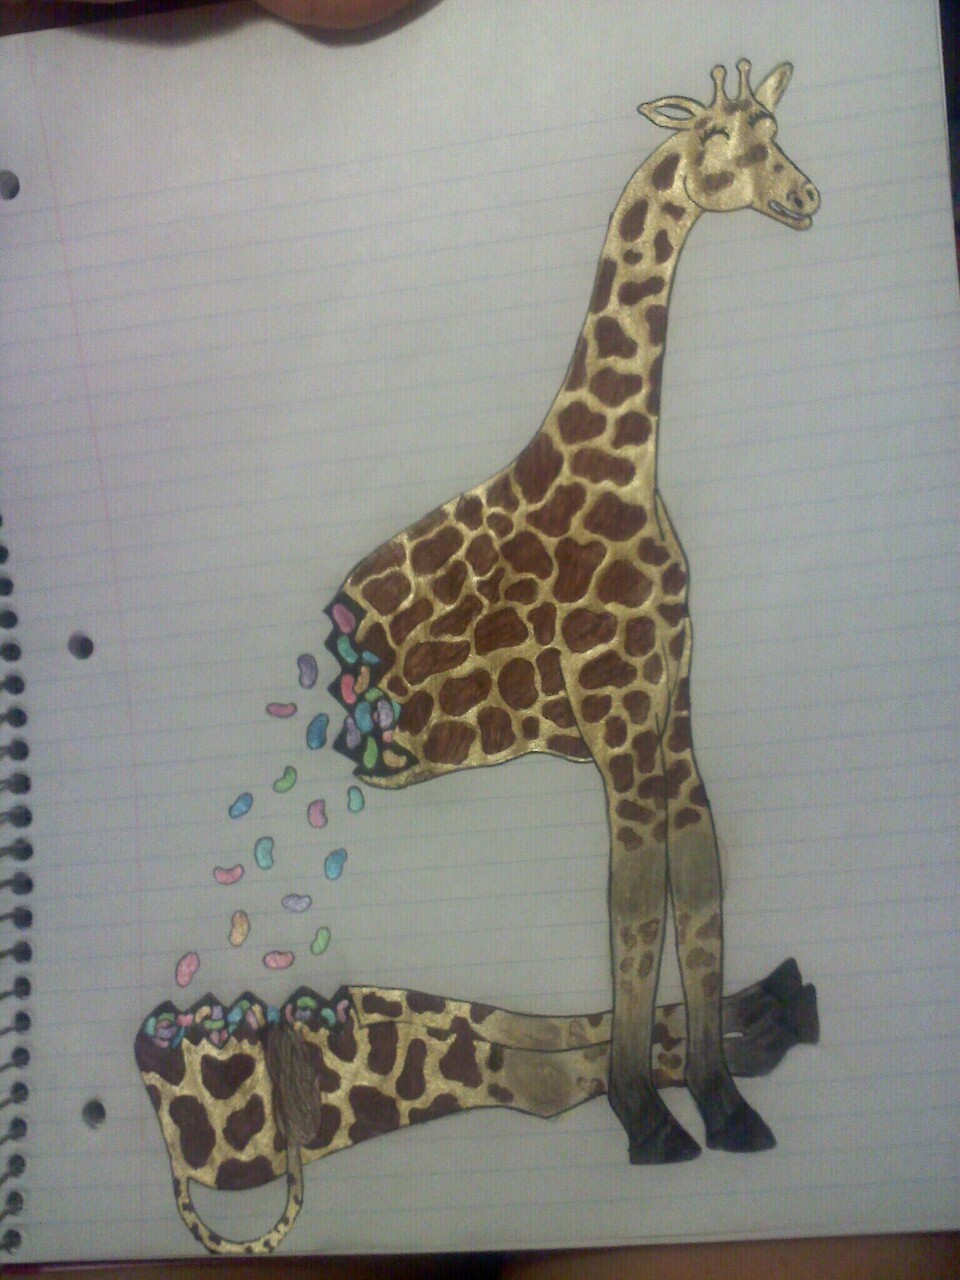 Magic Giraffe - Jordan